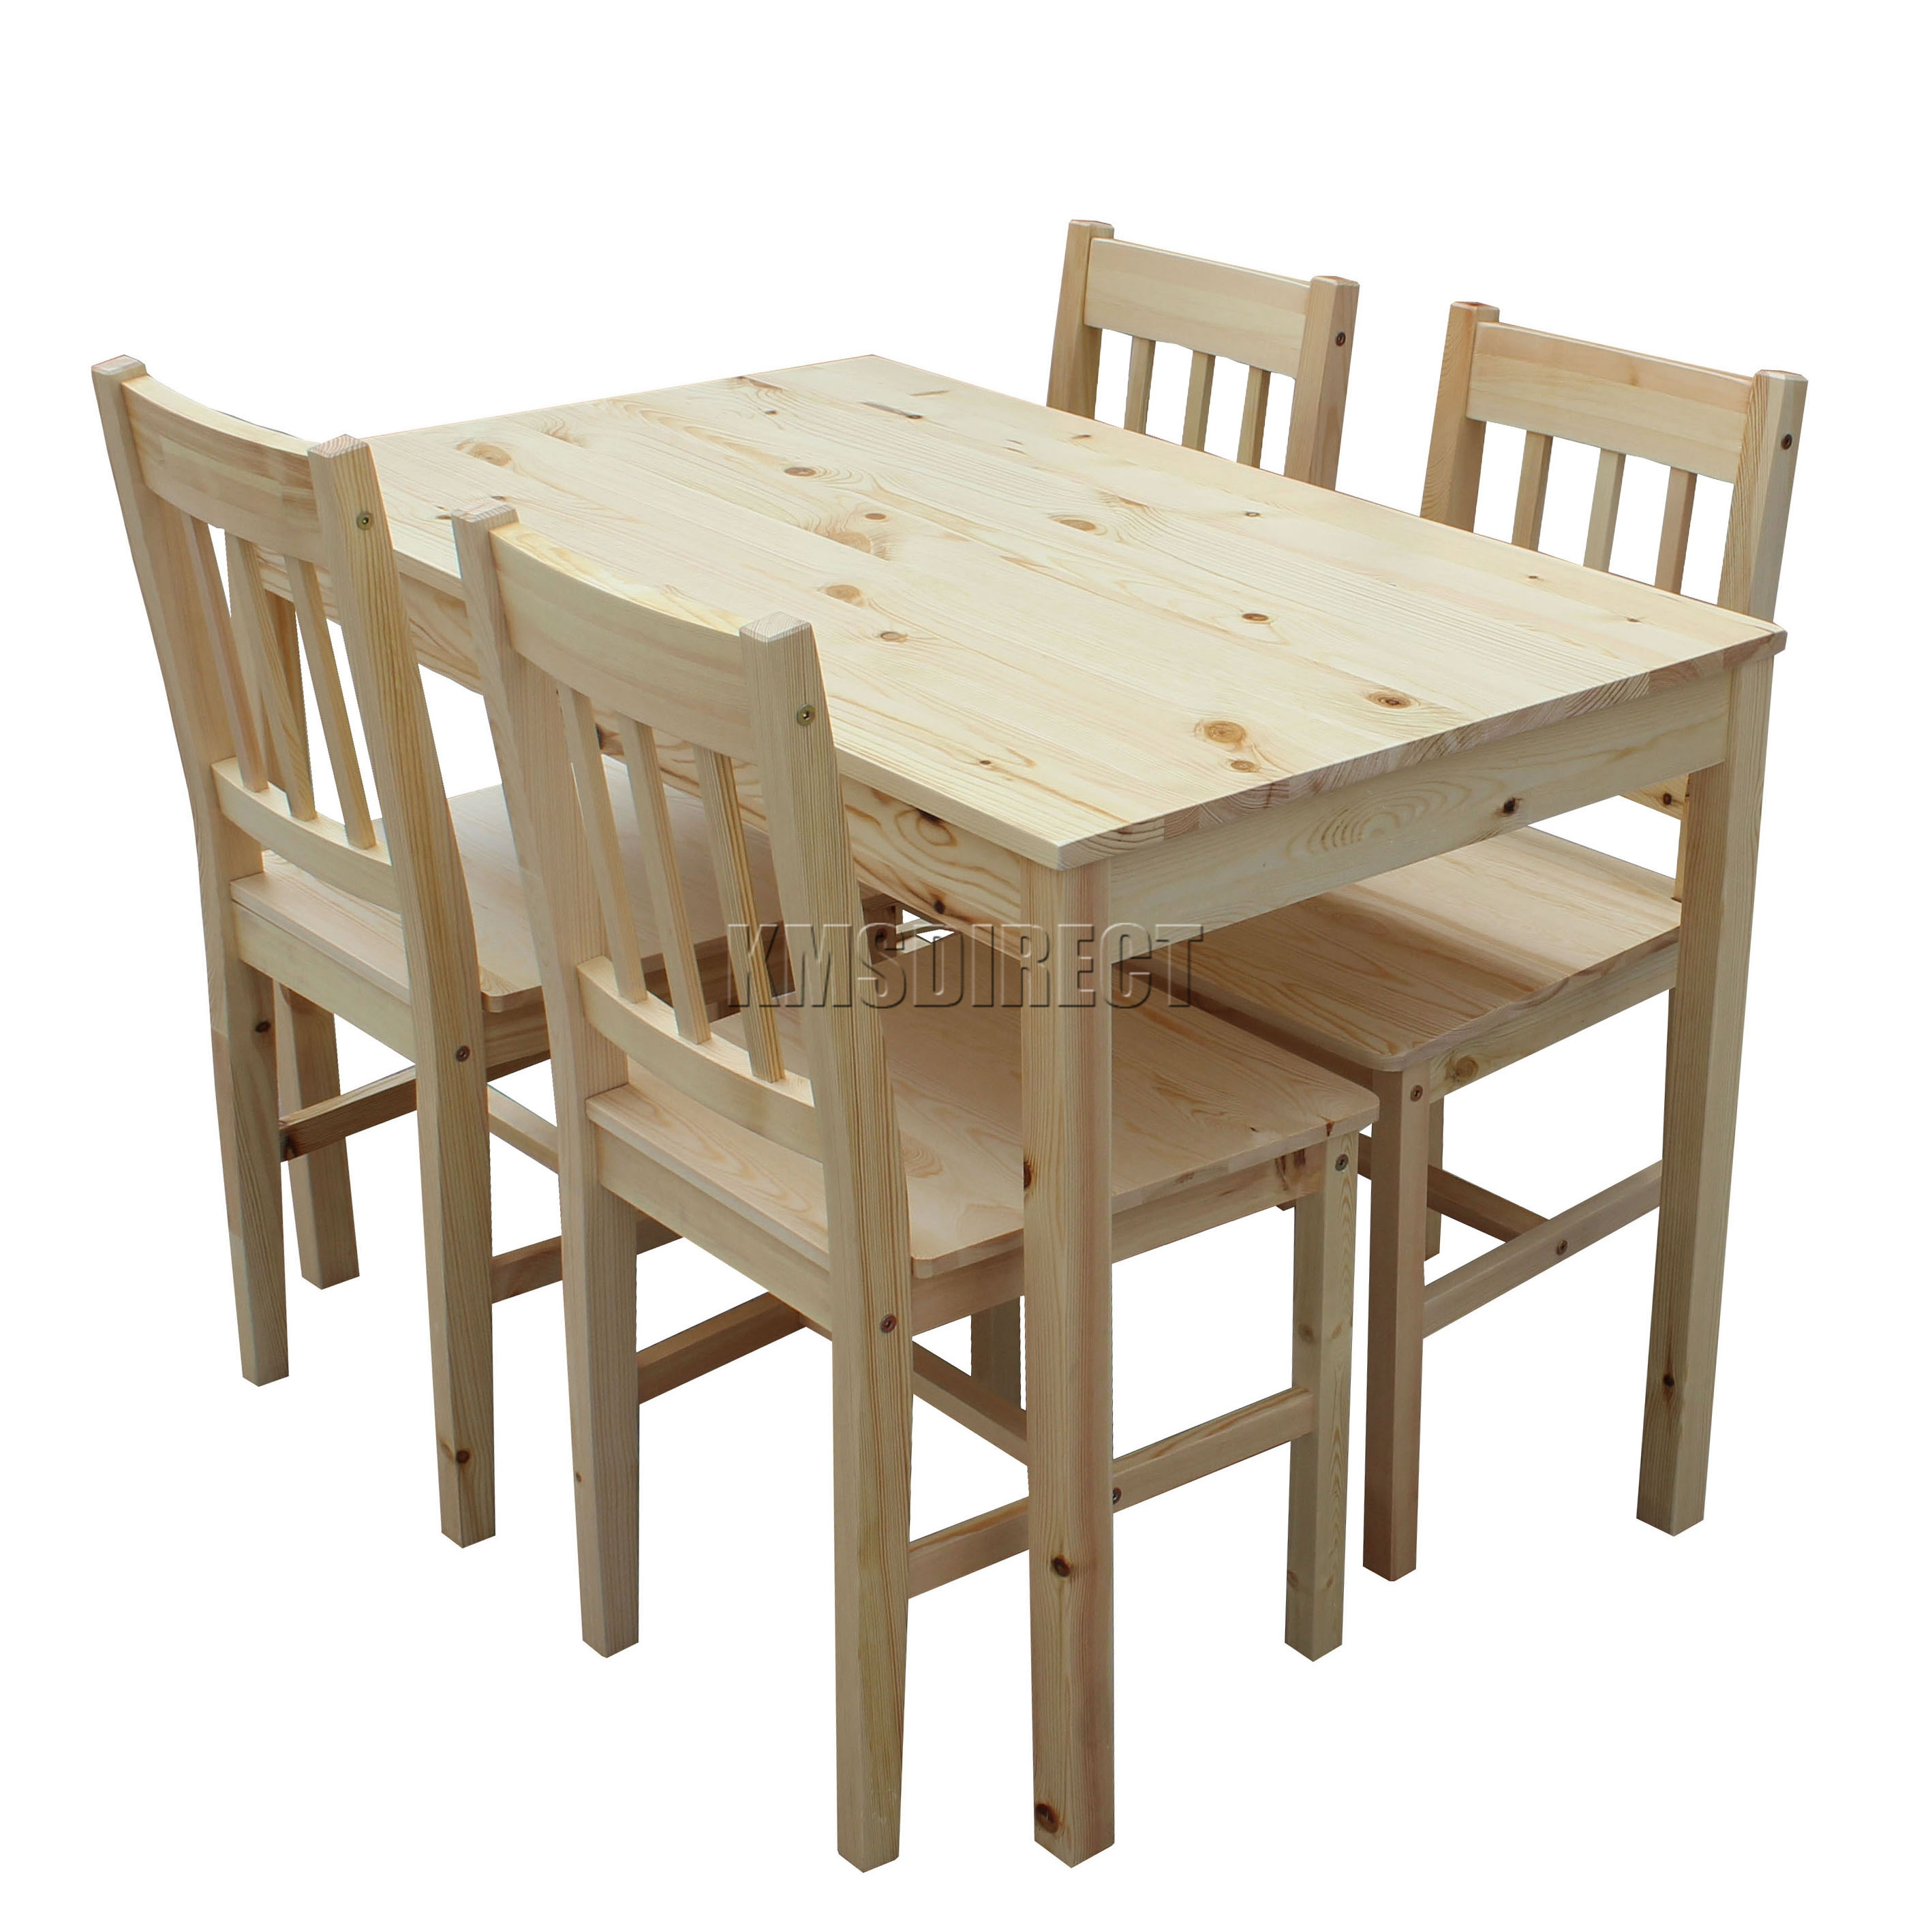 Solid Wood Kitchen Tables: FoxHunter Solid Wooden Dining Table With 4 Chairs Set